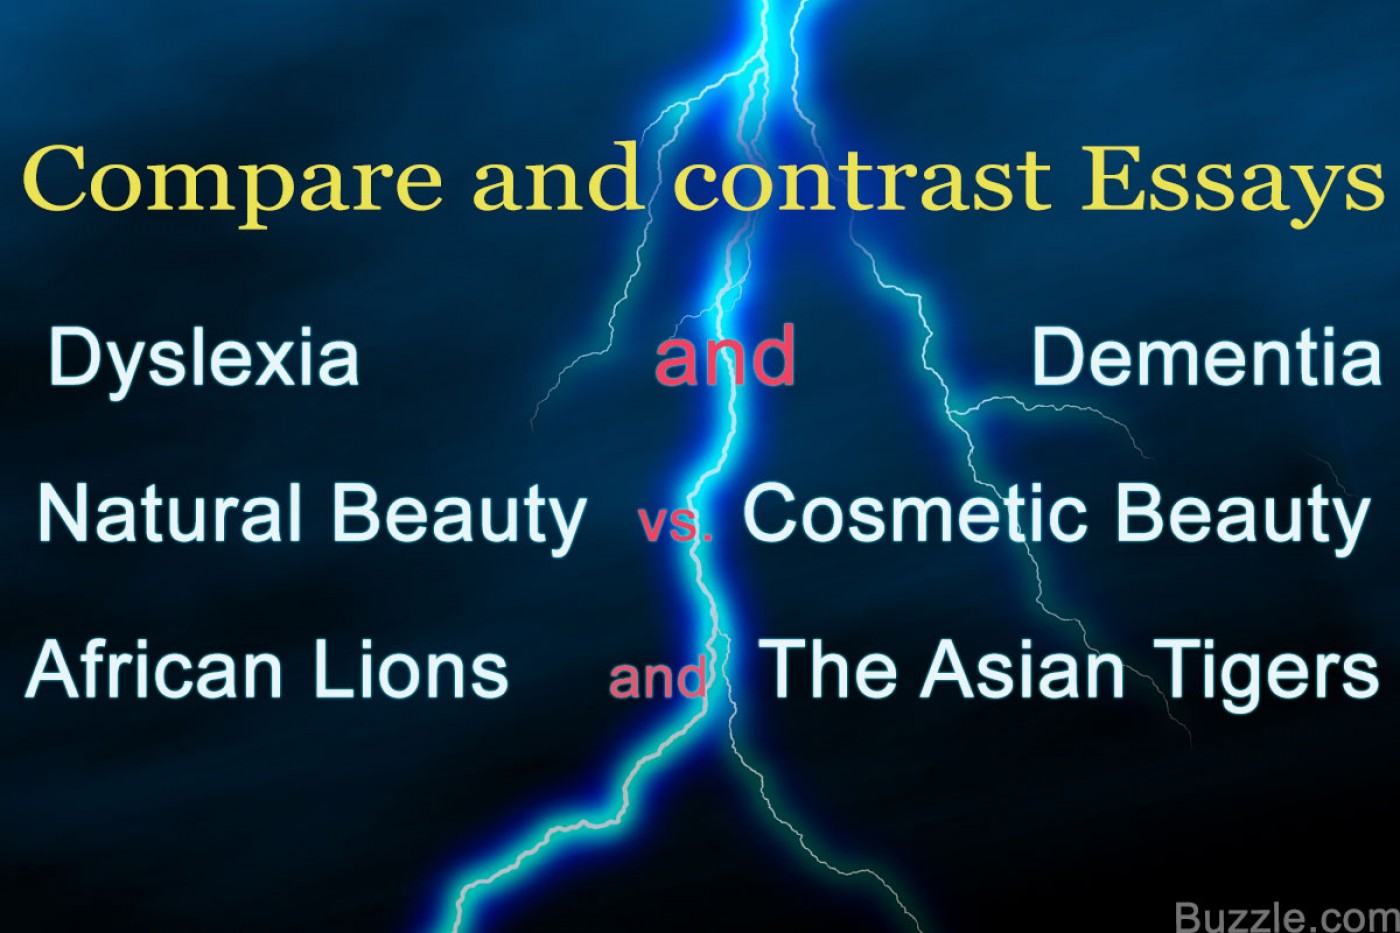 001 Contrast Essay Topics Compare List Of And Astounding Examples High School Middle 1400